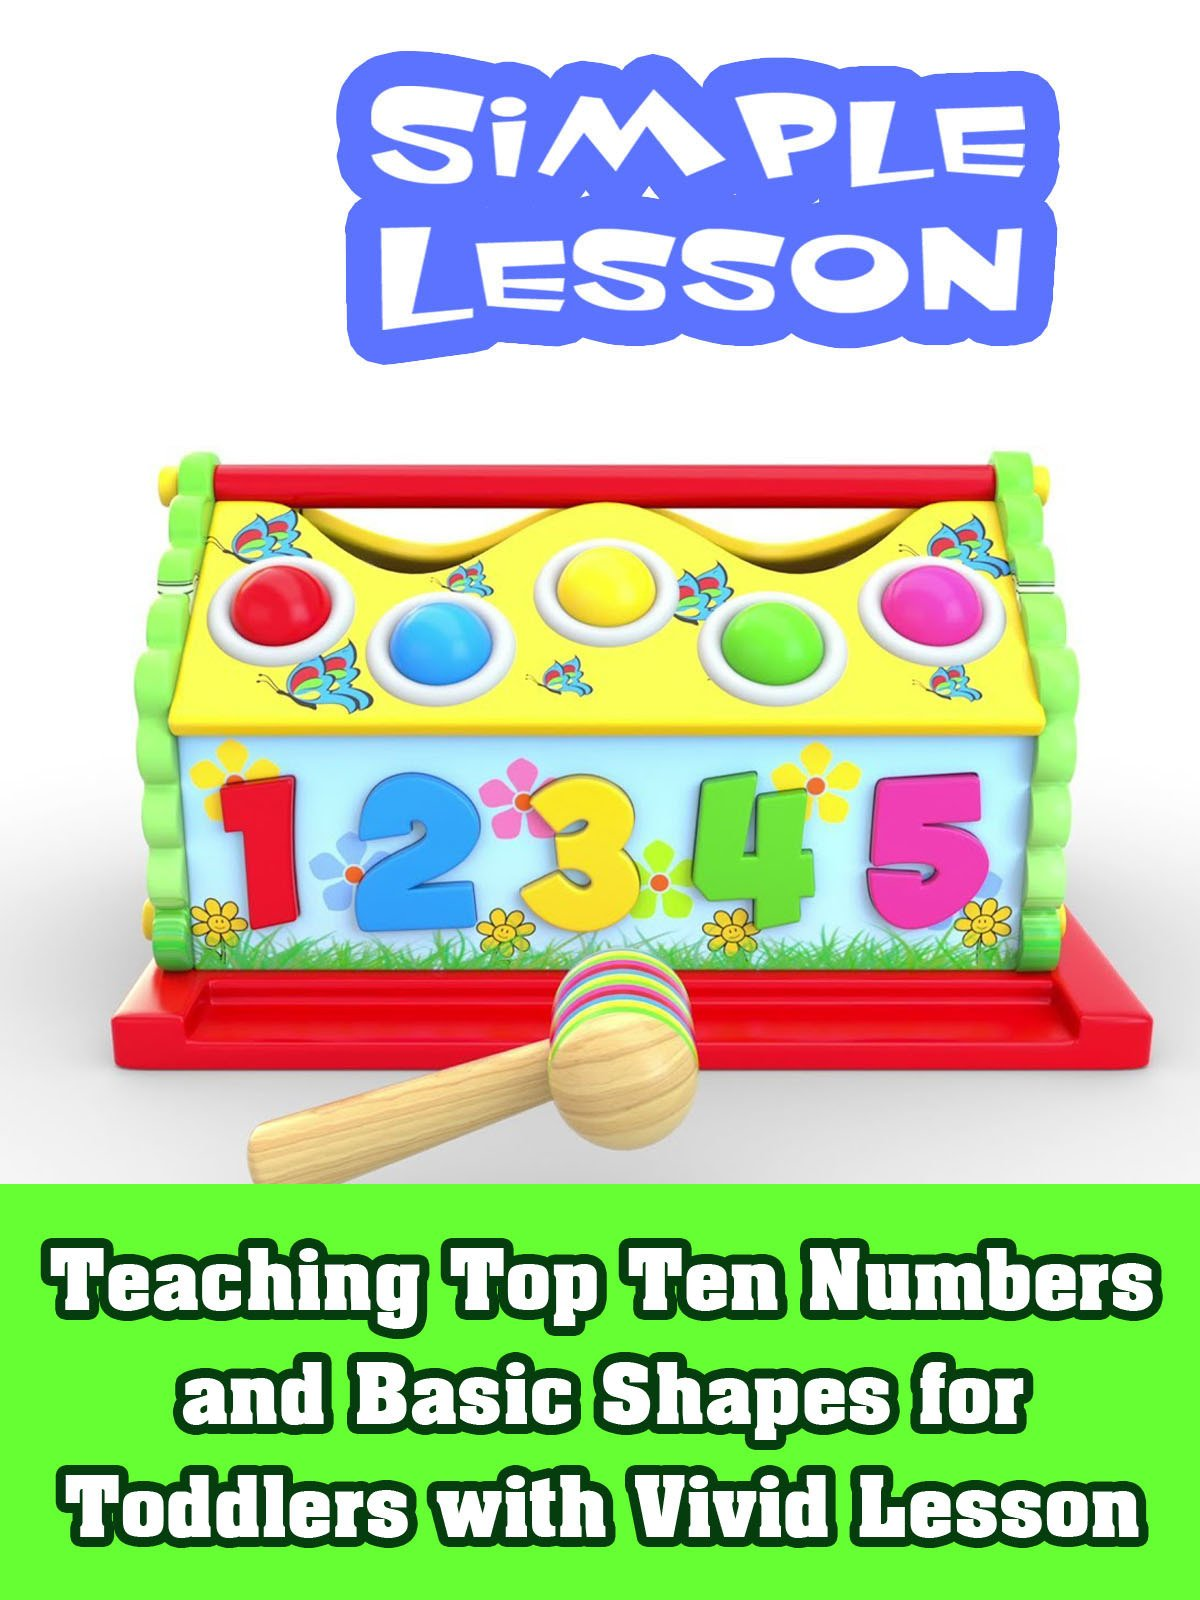 Teaching top ten Numbers and basic shapes for Toddlers with vivid lesson